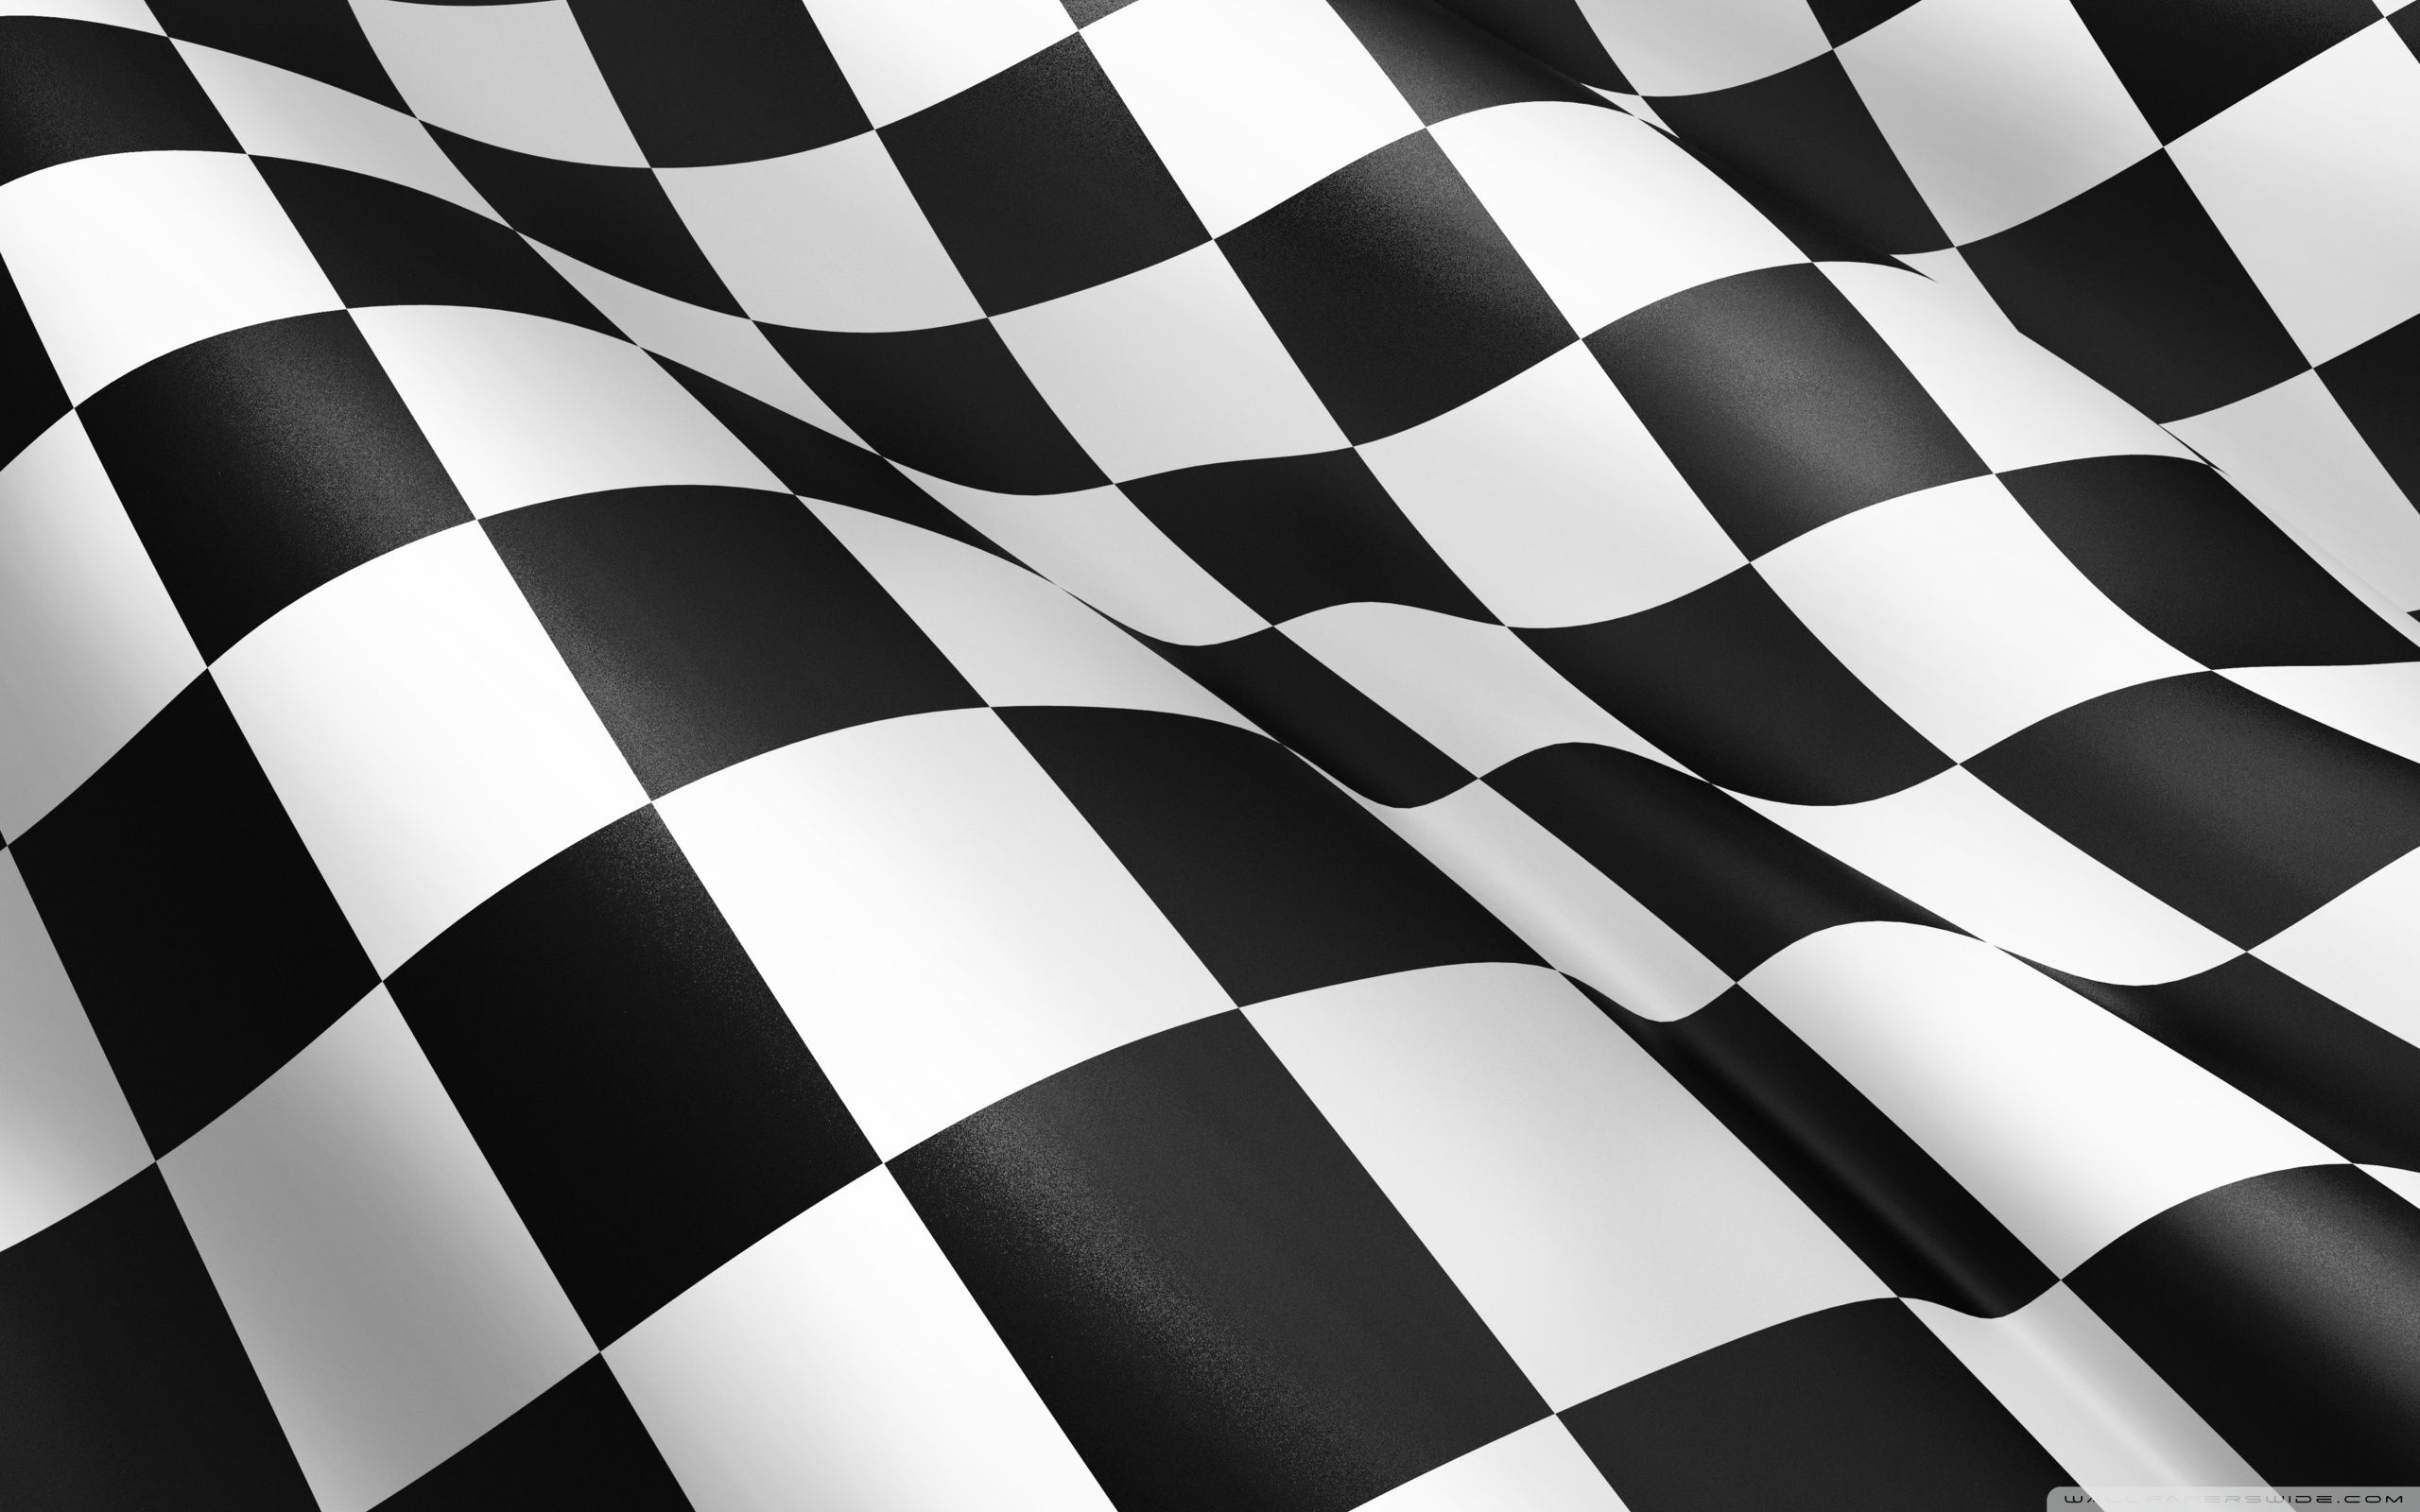 Racing Flag Wallpapers   Top Racing Flag Backgrounds 2560x1600